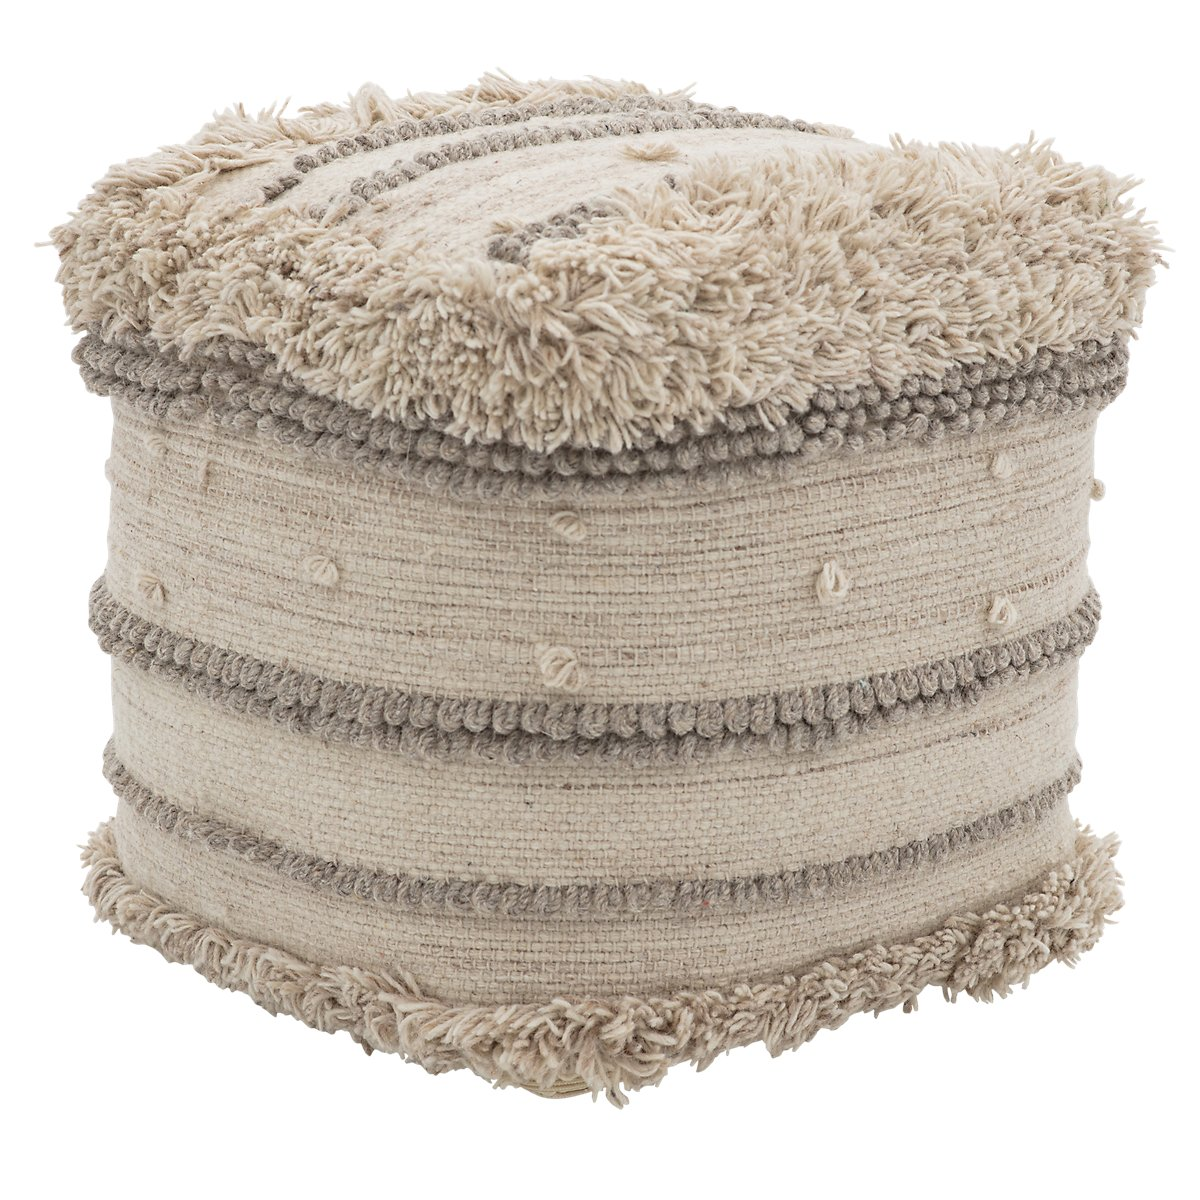 Sco Ivory Wool Accent Pouf Home Accents Ottomans City Furniture